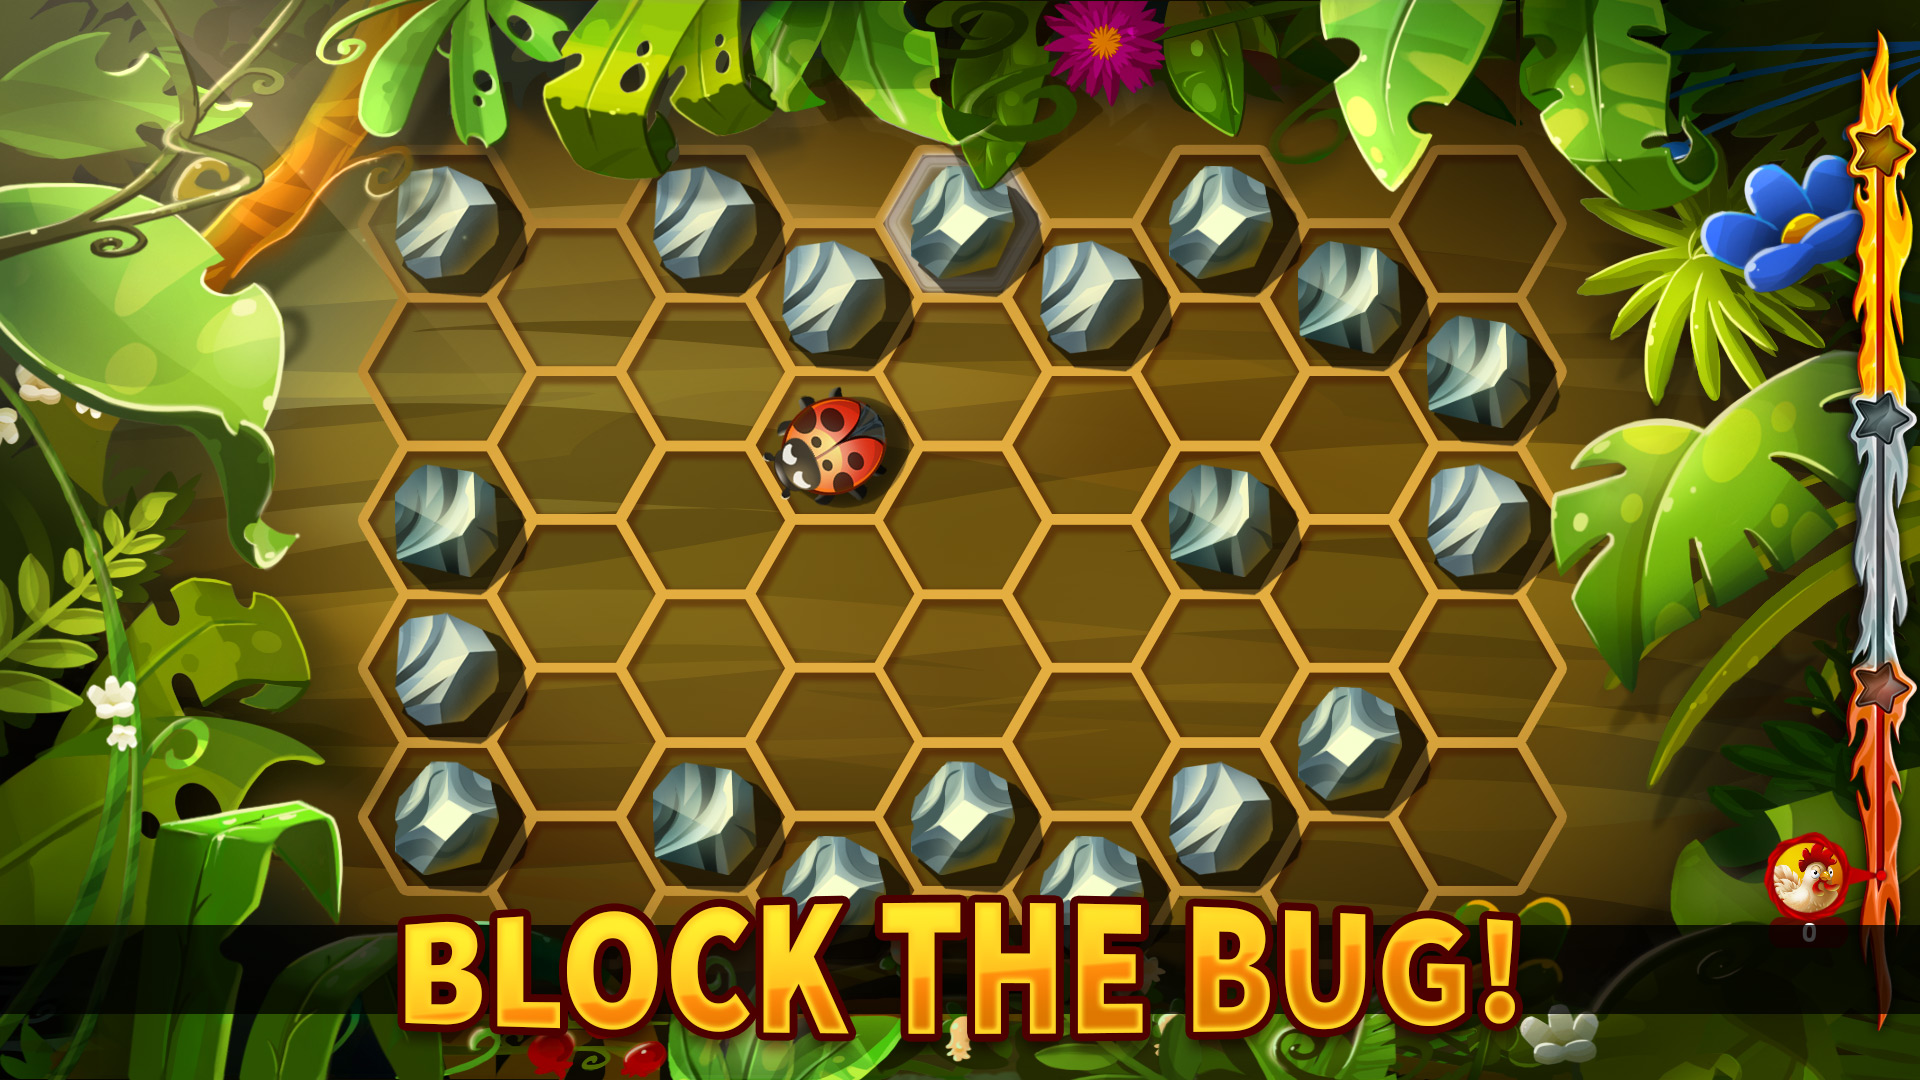 PP_BLOCK_THE_BUG!